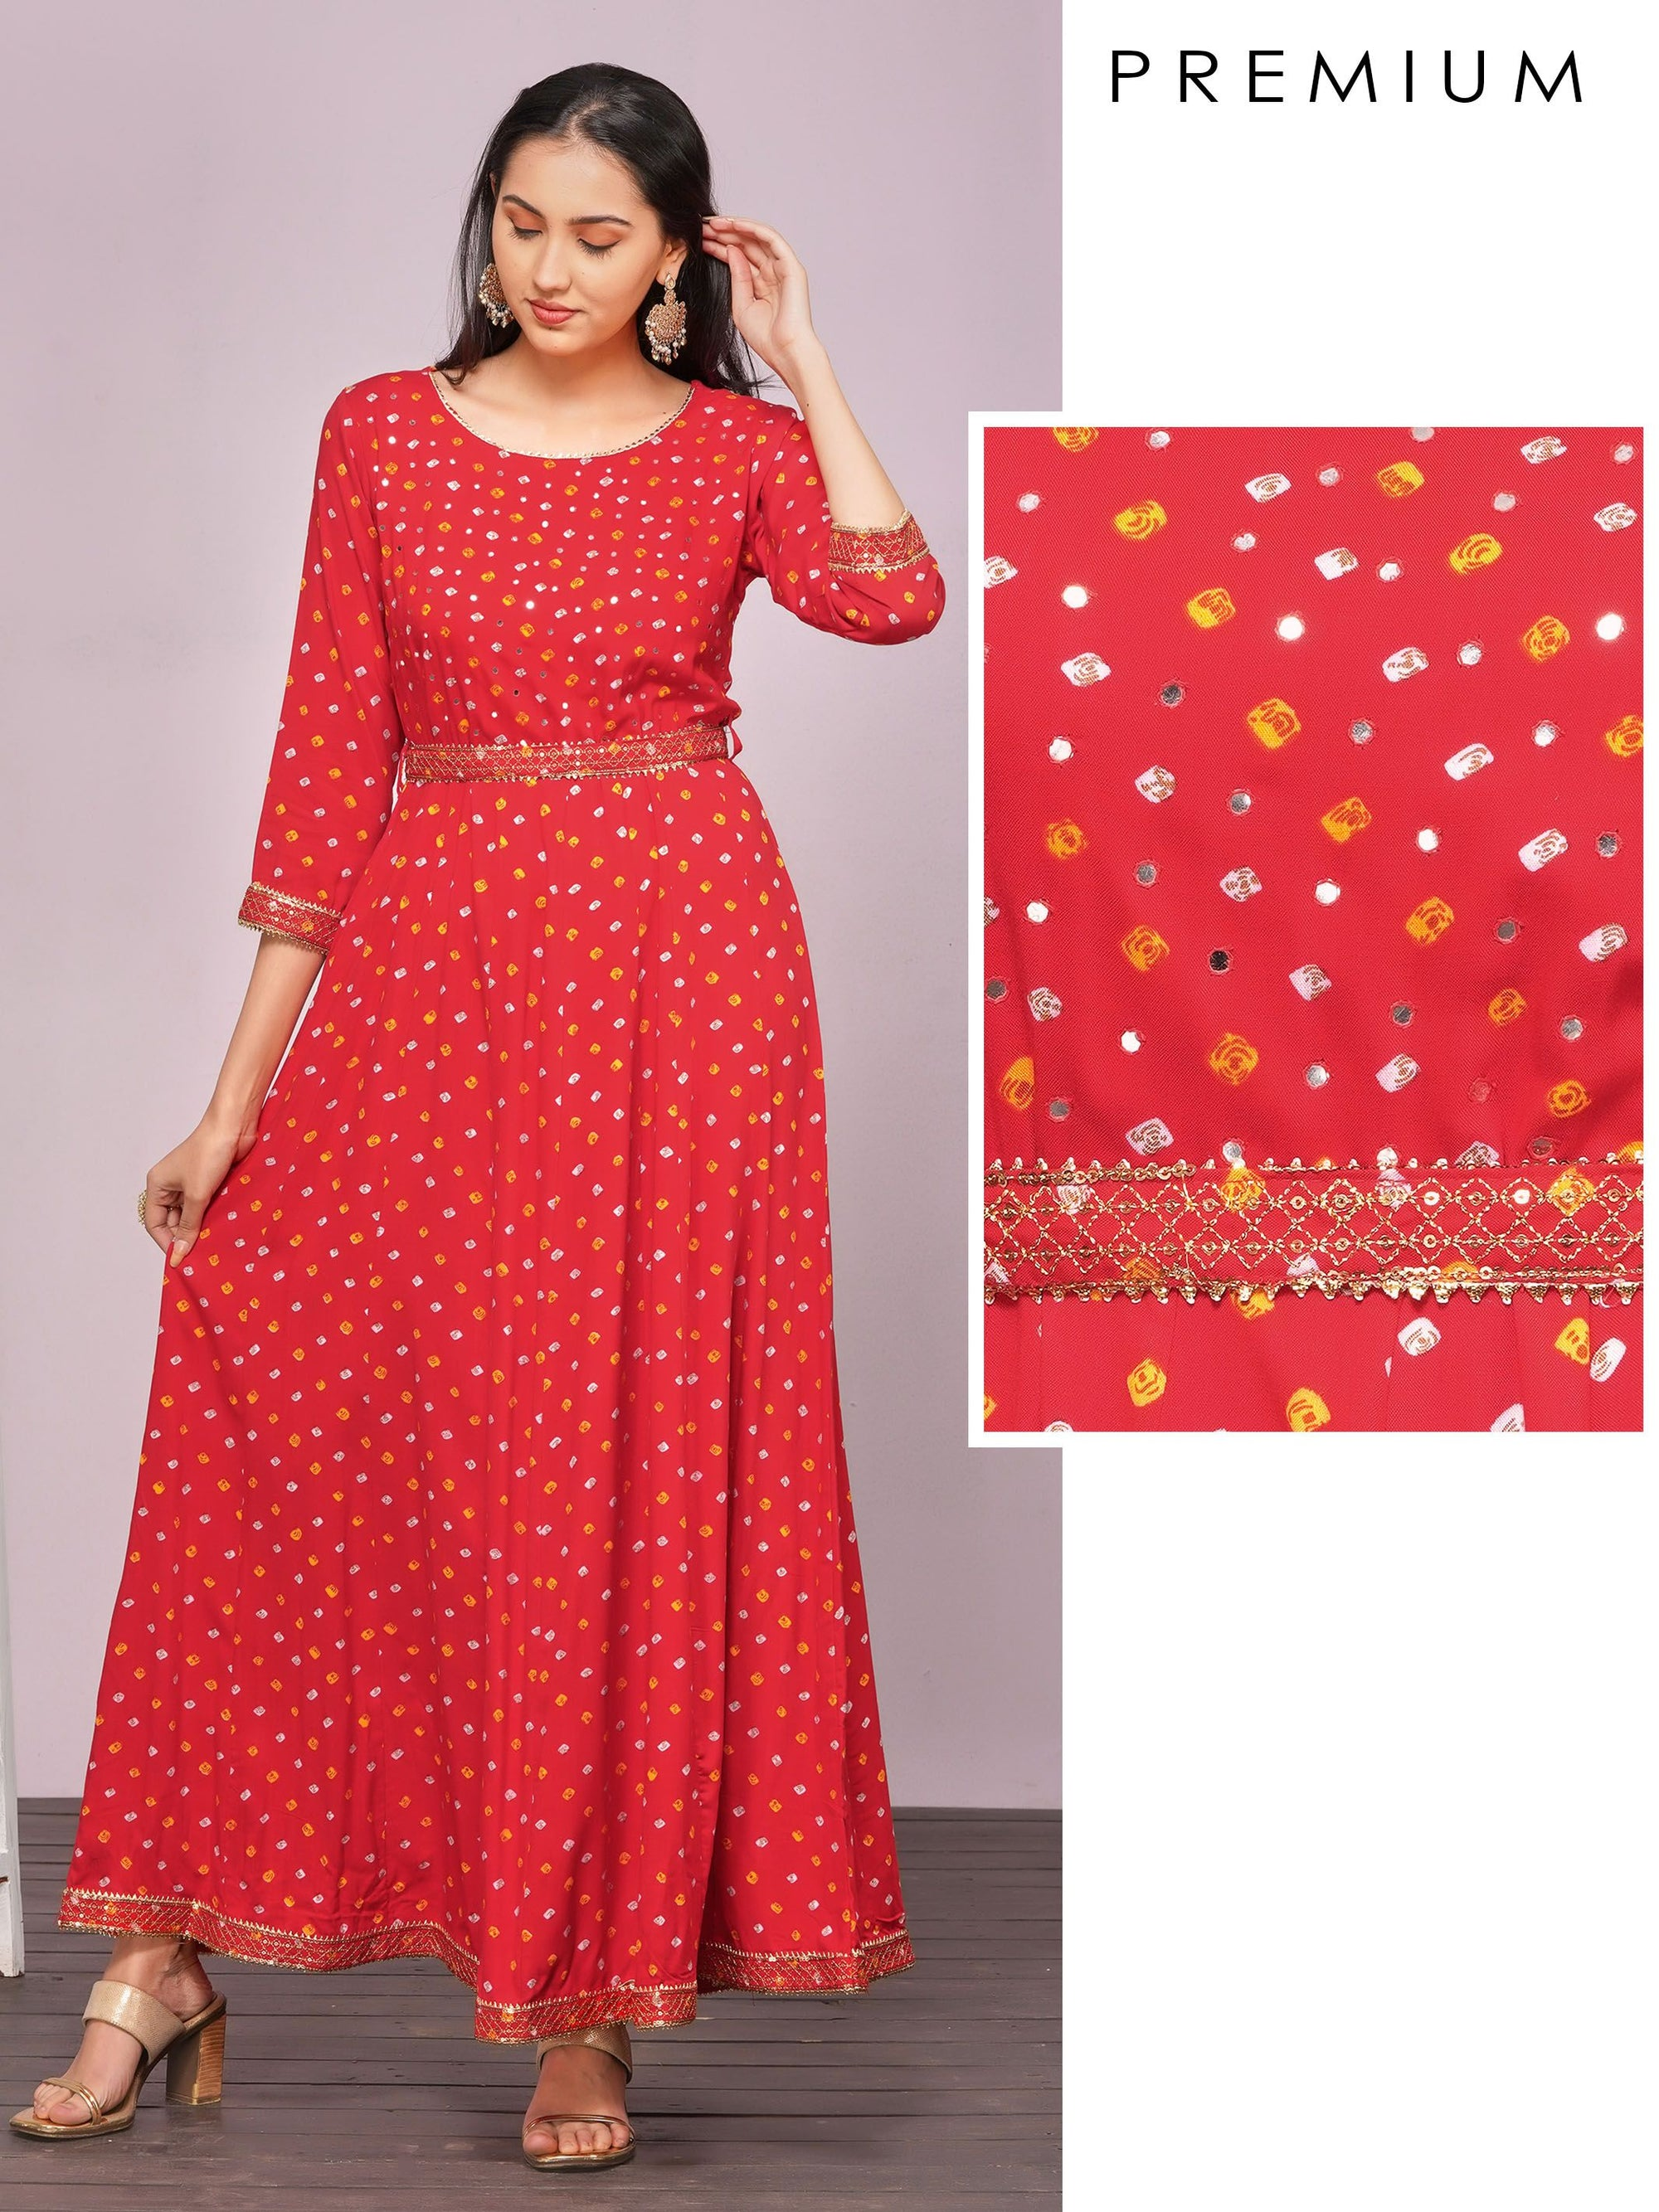 Sequins & Temple Gota Embellished Bandhani Maxi – Ruby Red